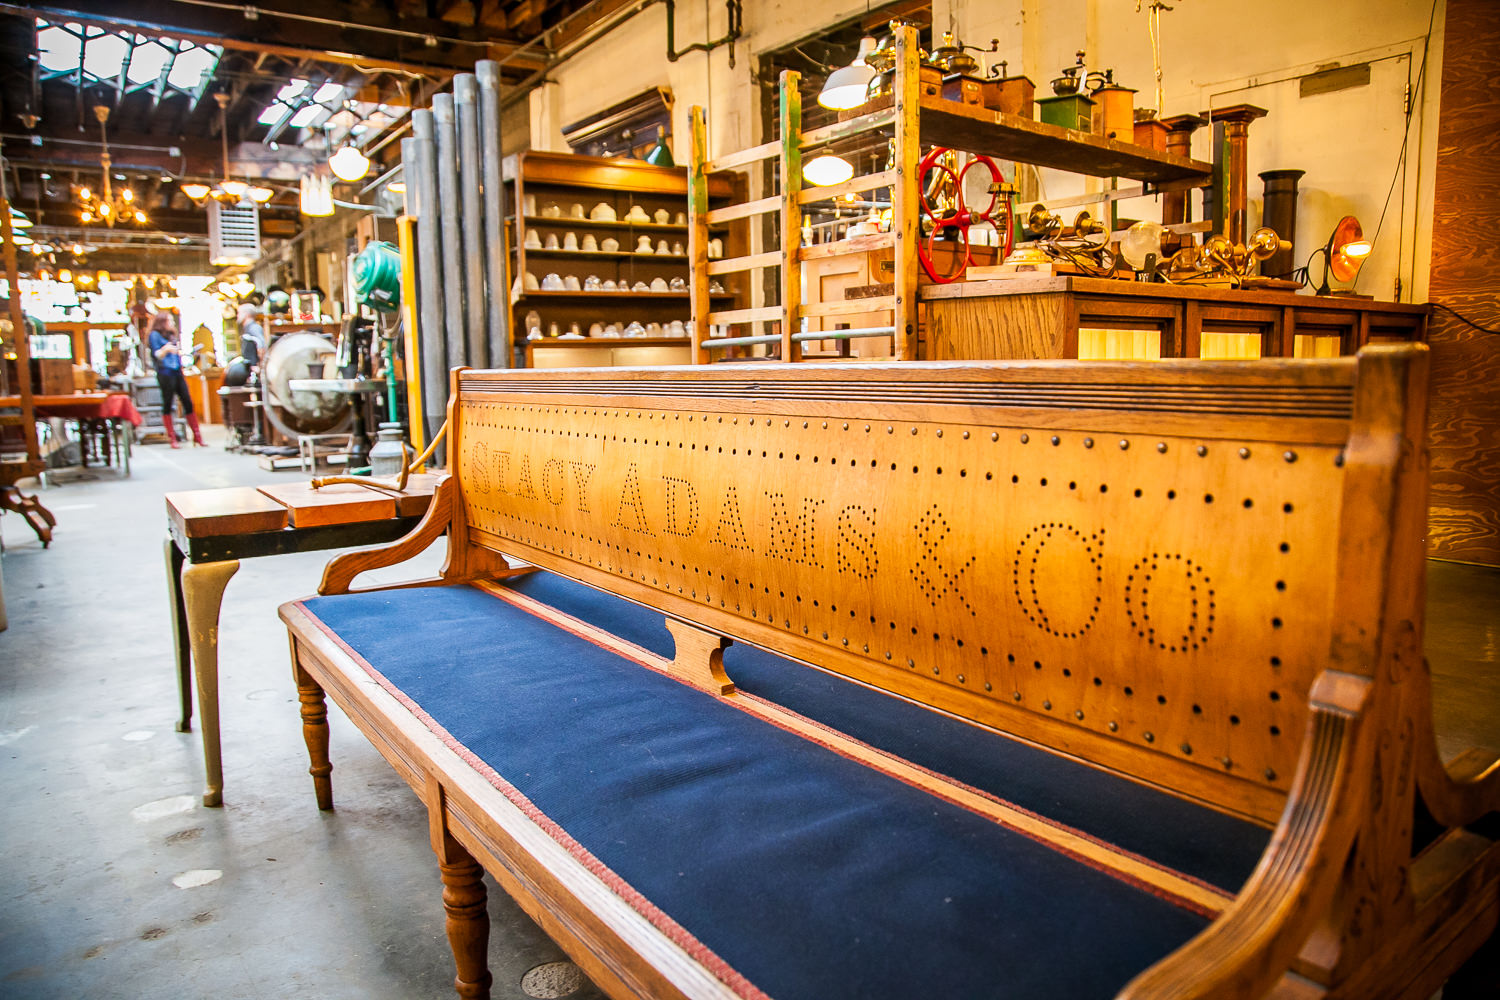 Restored Bench at Old Portland Hardware & Architectural